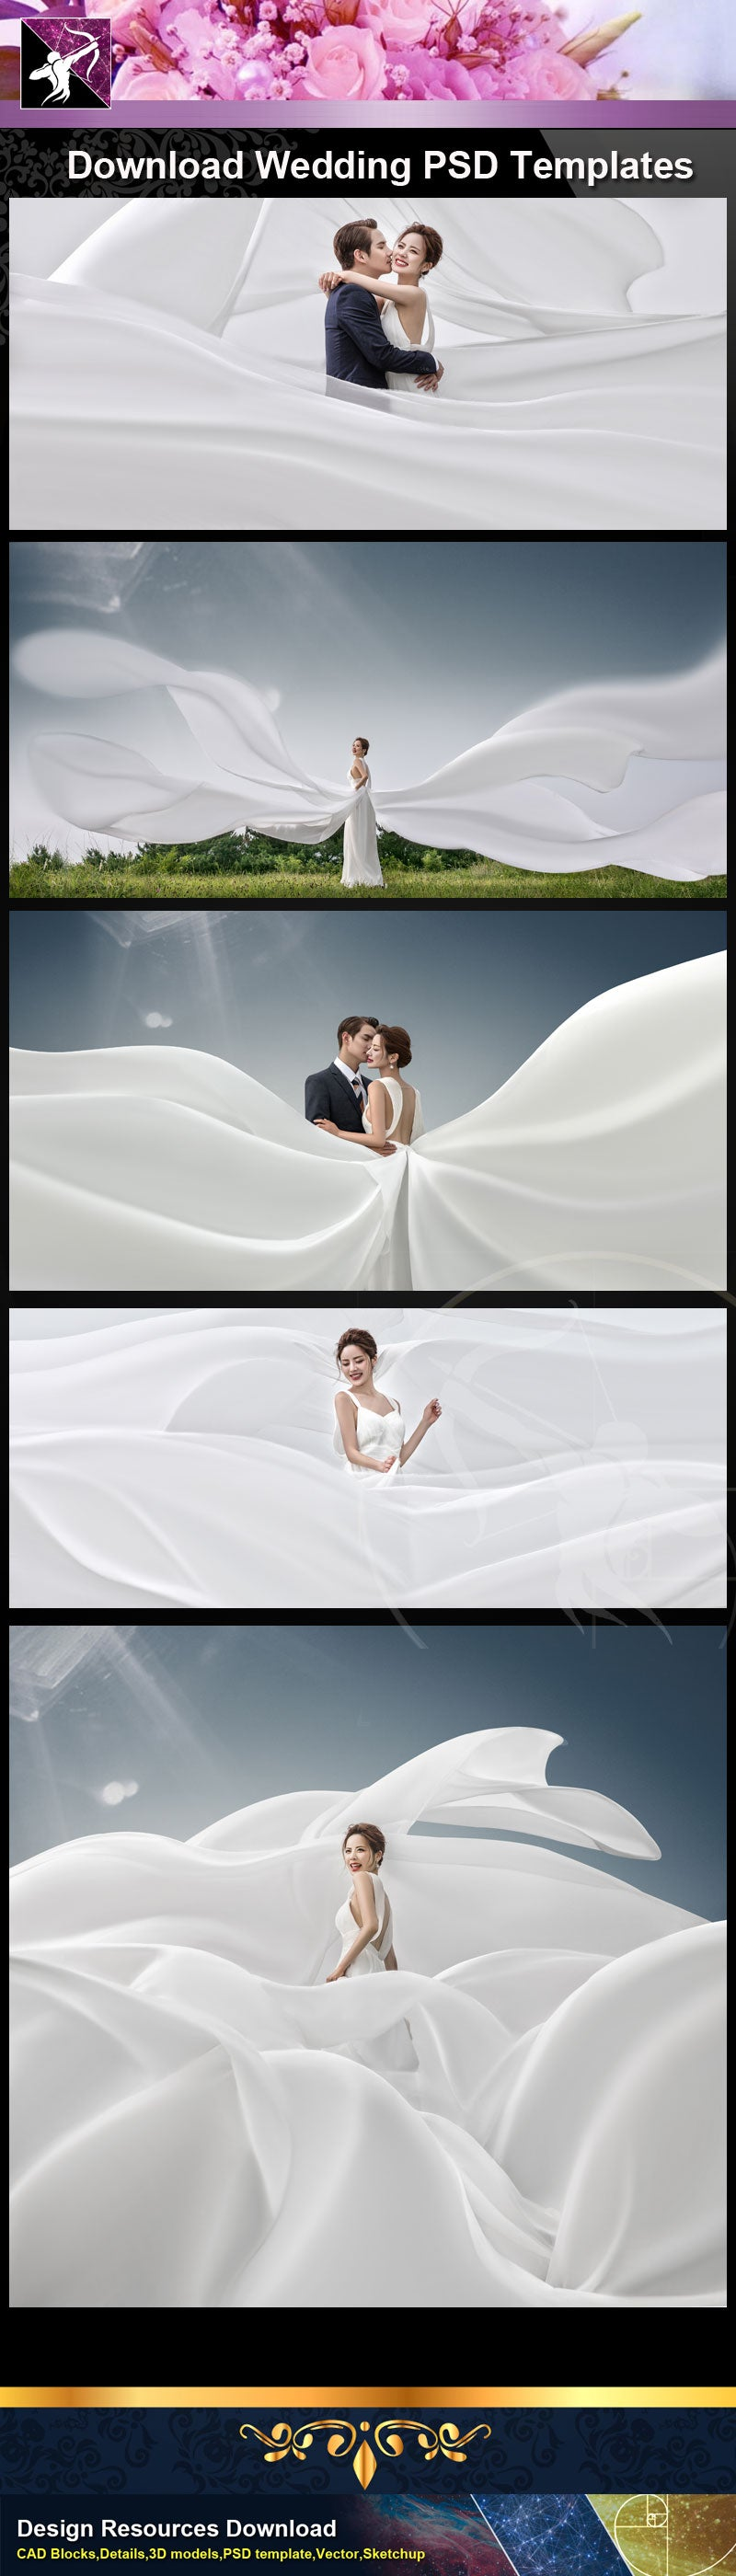 "Photoshop PSD Wedding Templates ""PSD"" file can be used in wedding album design."